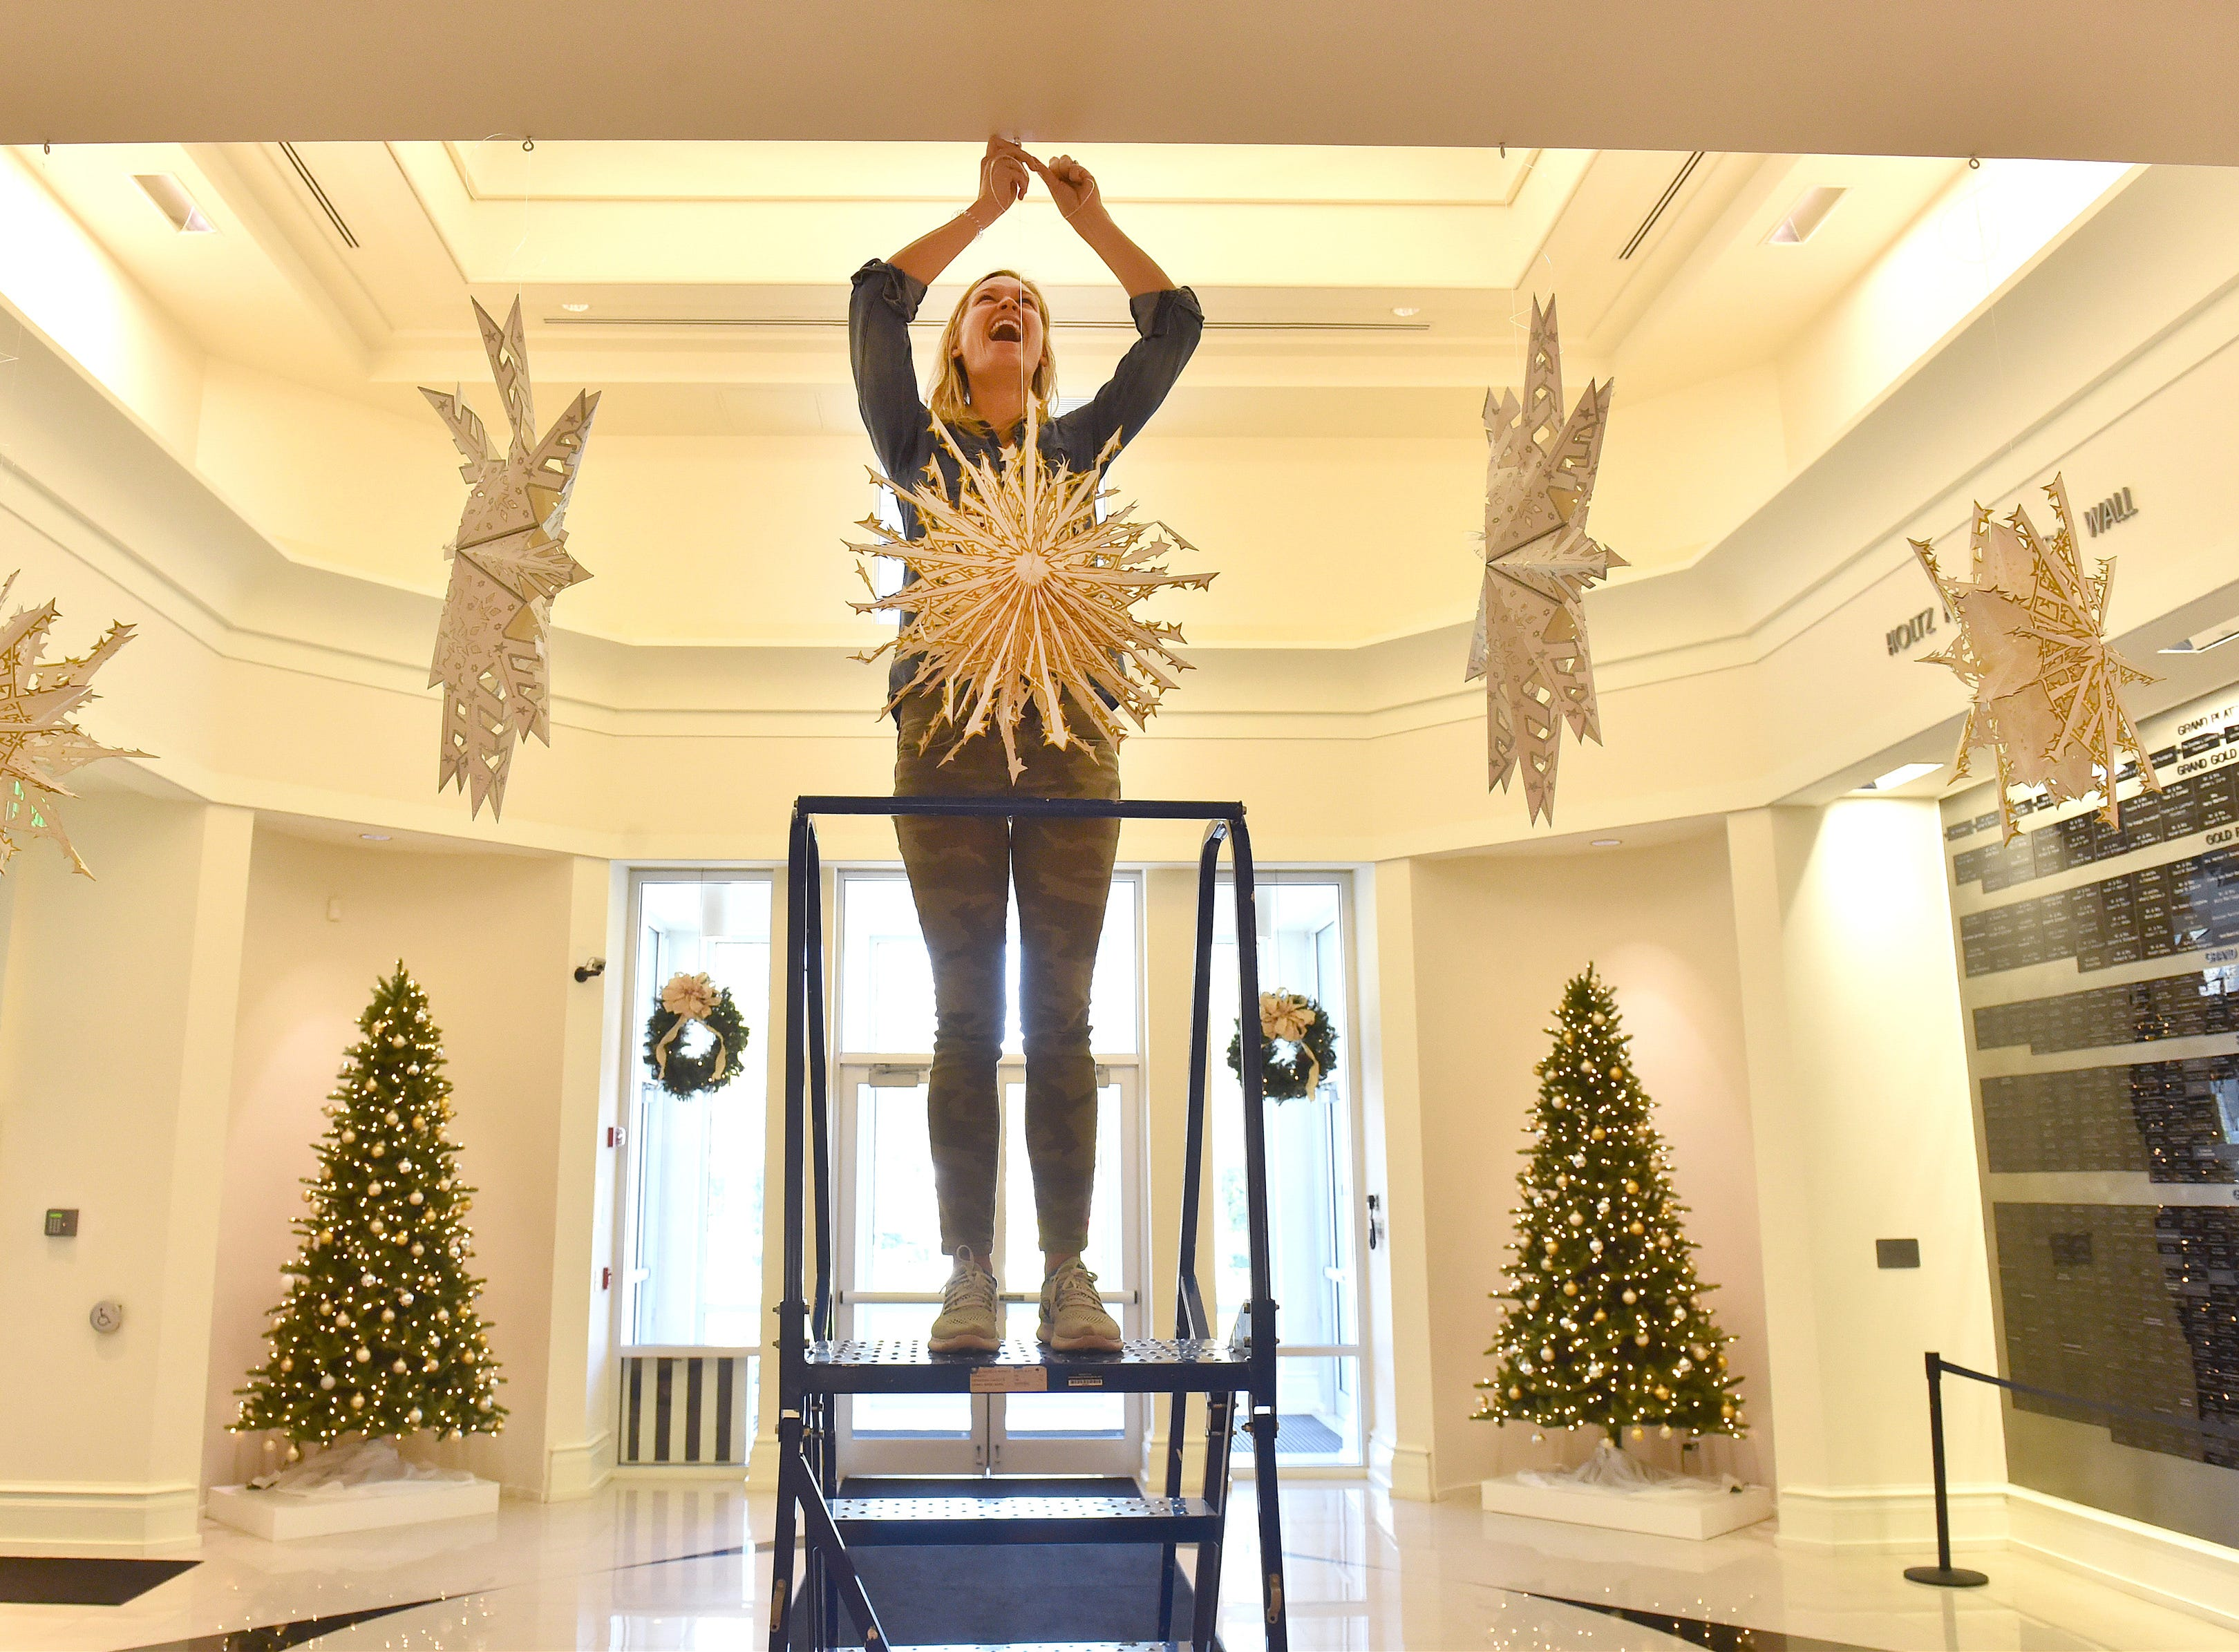 "Pamela Sommers, Youth & Family Programs Manger at the Vero Beach Museum of Art, decorates the museum's lobby on Friday, Nov. 30, 2018, in preparation for their annual Holidays at the Museum event this Sunday, Dec. 2nd, 1 p.m. to 4 p.m. at 3001 Riverside Park Drive in Vero Beach. The annual family festival this year is inspired by their Made in Germany: Art Since 1980 from the Rubell Family Collection, and will feature a variety of events throughout the holiday decorated museum during the afternoon. ""The museum has been in existence for over 30 years and we've always given back to the community and this is one of the major events that we host every year that does exactly that,"" said Sophie Bentham-Wood, Director of Marketing and Communications at the museum. ""It's a free admission day that allows everyone who is part of our community to come and enjoy all the exhibitions and all the educational programs that we can offer throughout the year."" The museum store will be offering a 20 percent discount on all holiday themed merchandise during the event."